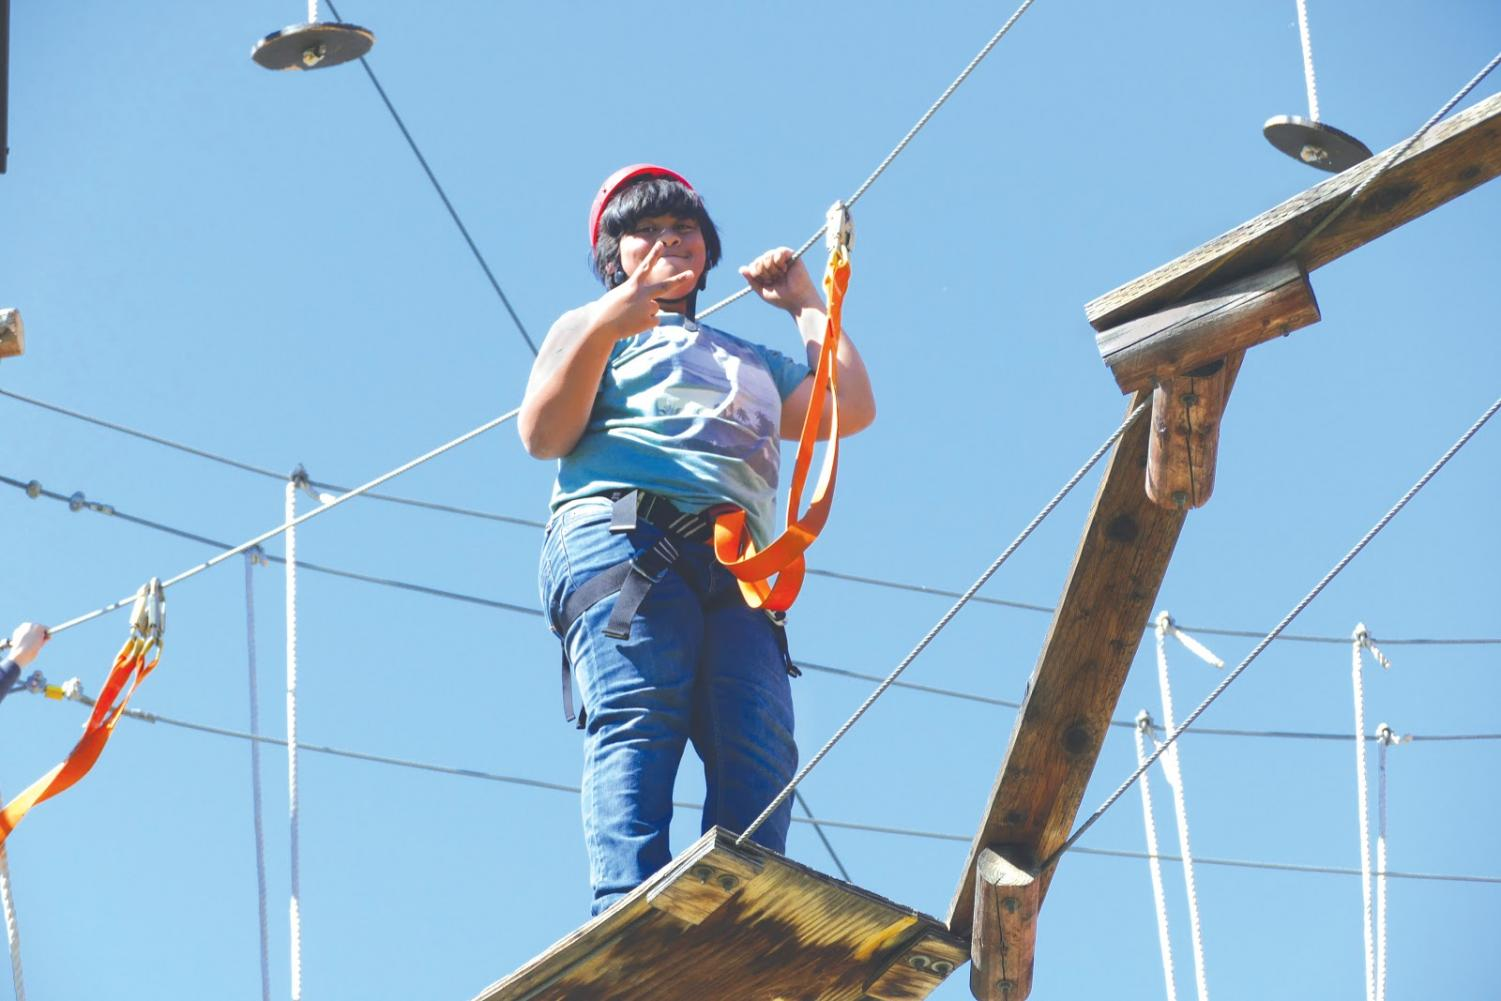 Junior Ryan Mendoza poses for the camera as he gets ready to zipline on Pathways's Orange County Ropes Course trip in Anaheim on Oct. 18.